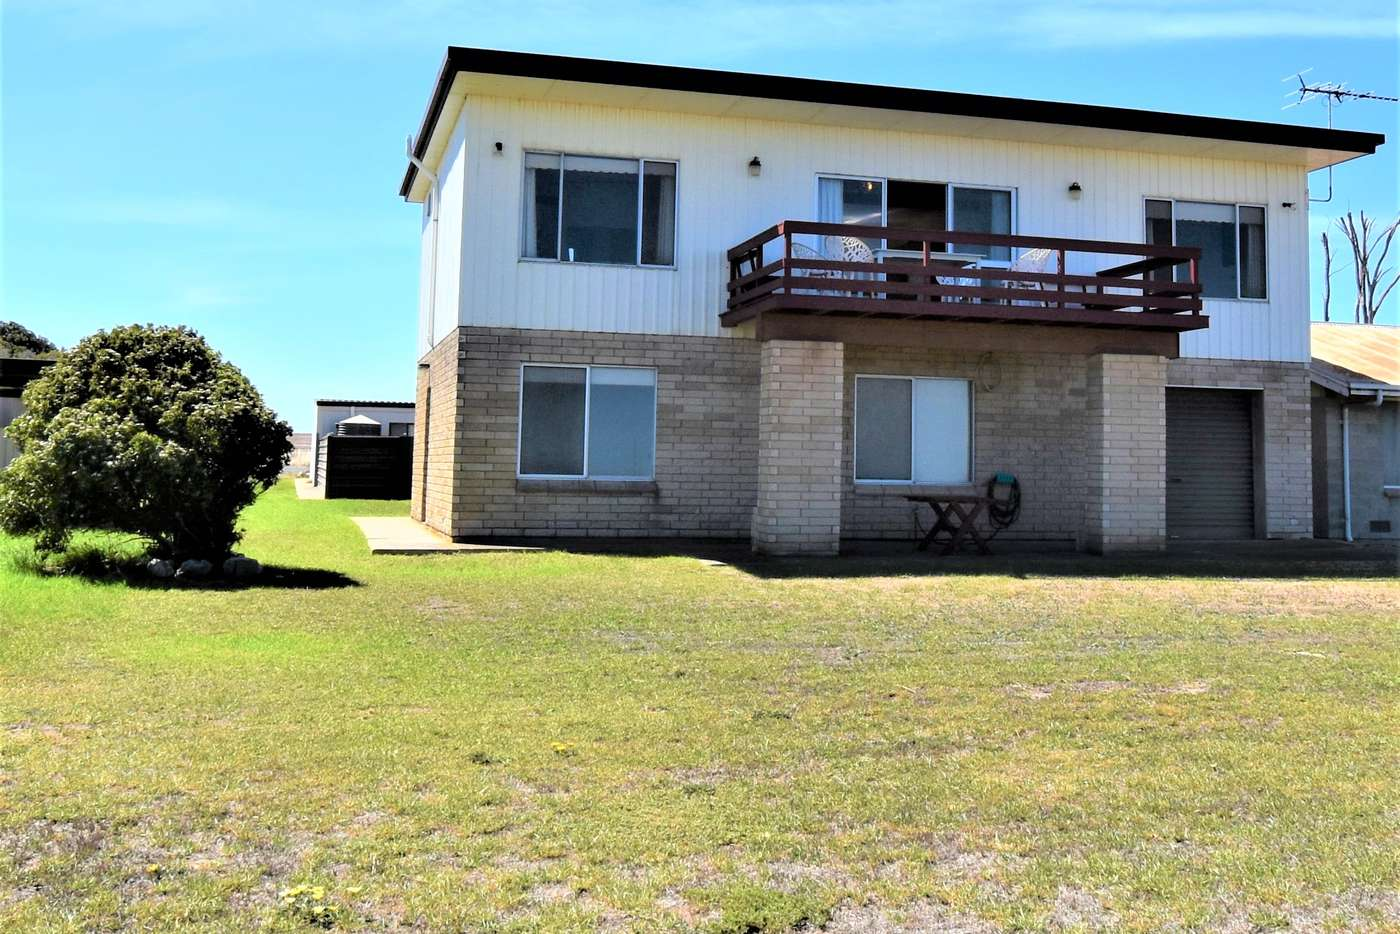 Main view of Homely house listing, 26 Hickeys Drive, Coobowie SA 5583